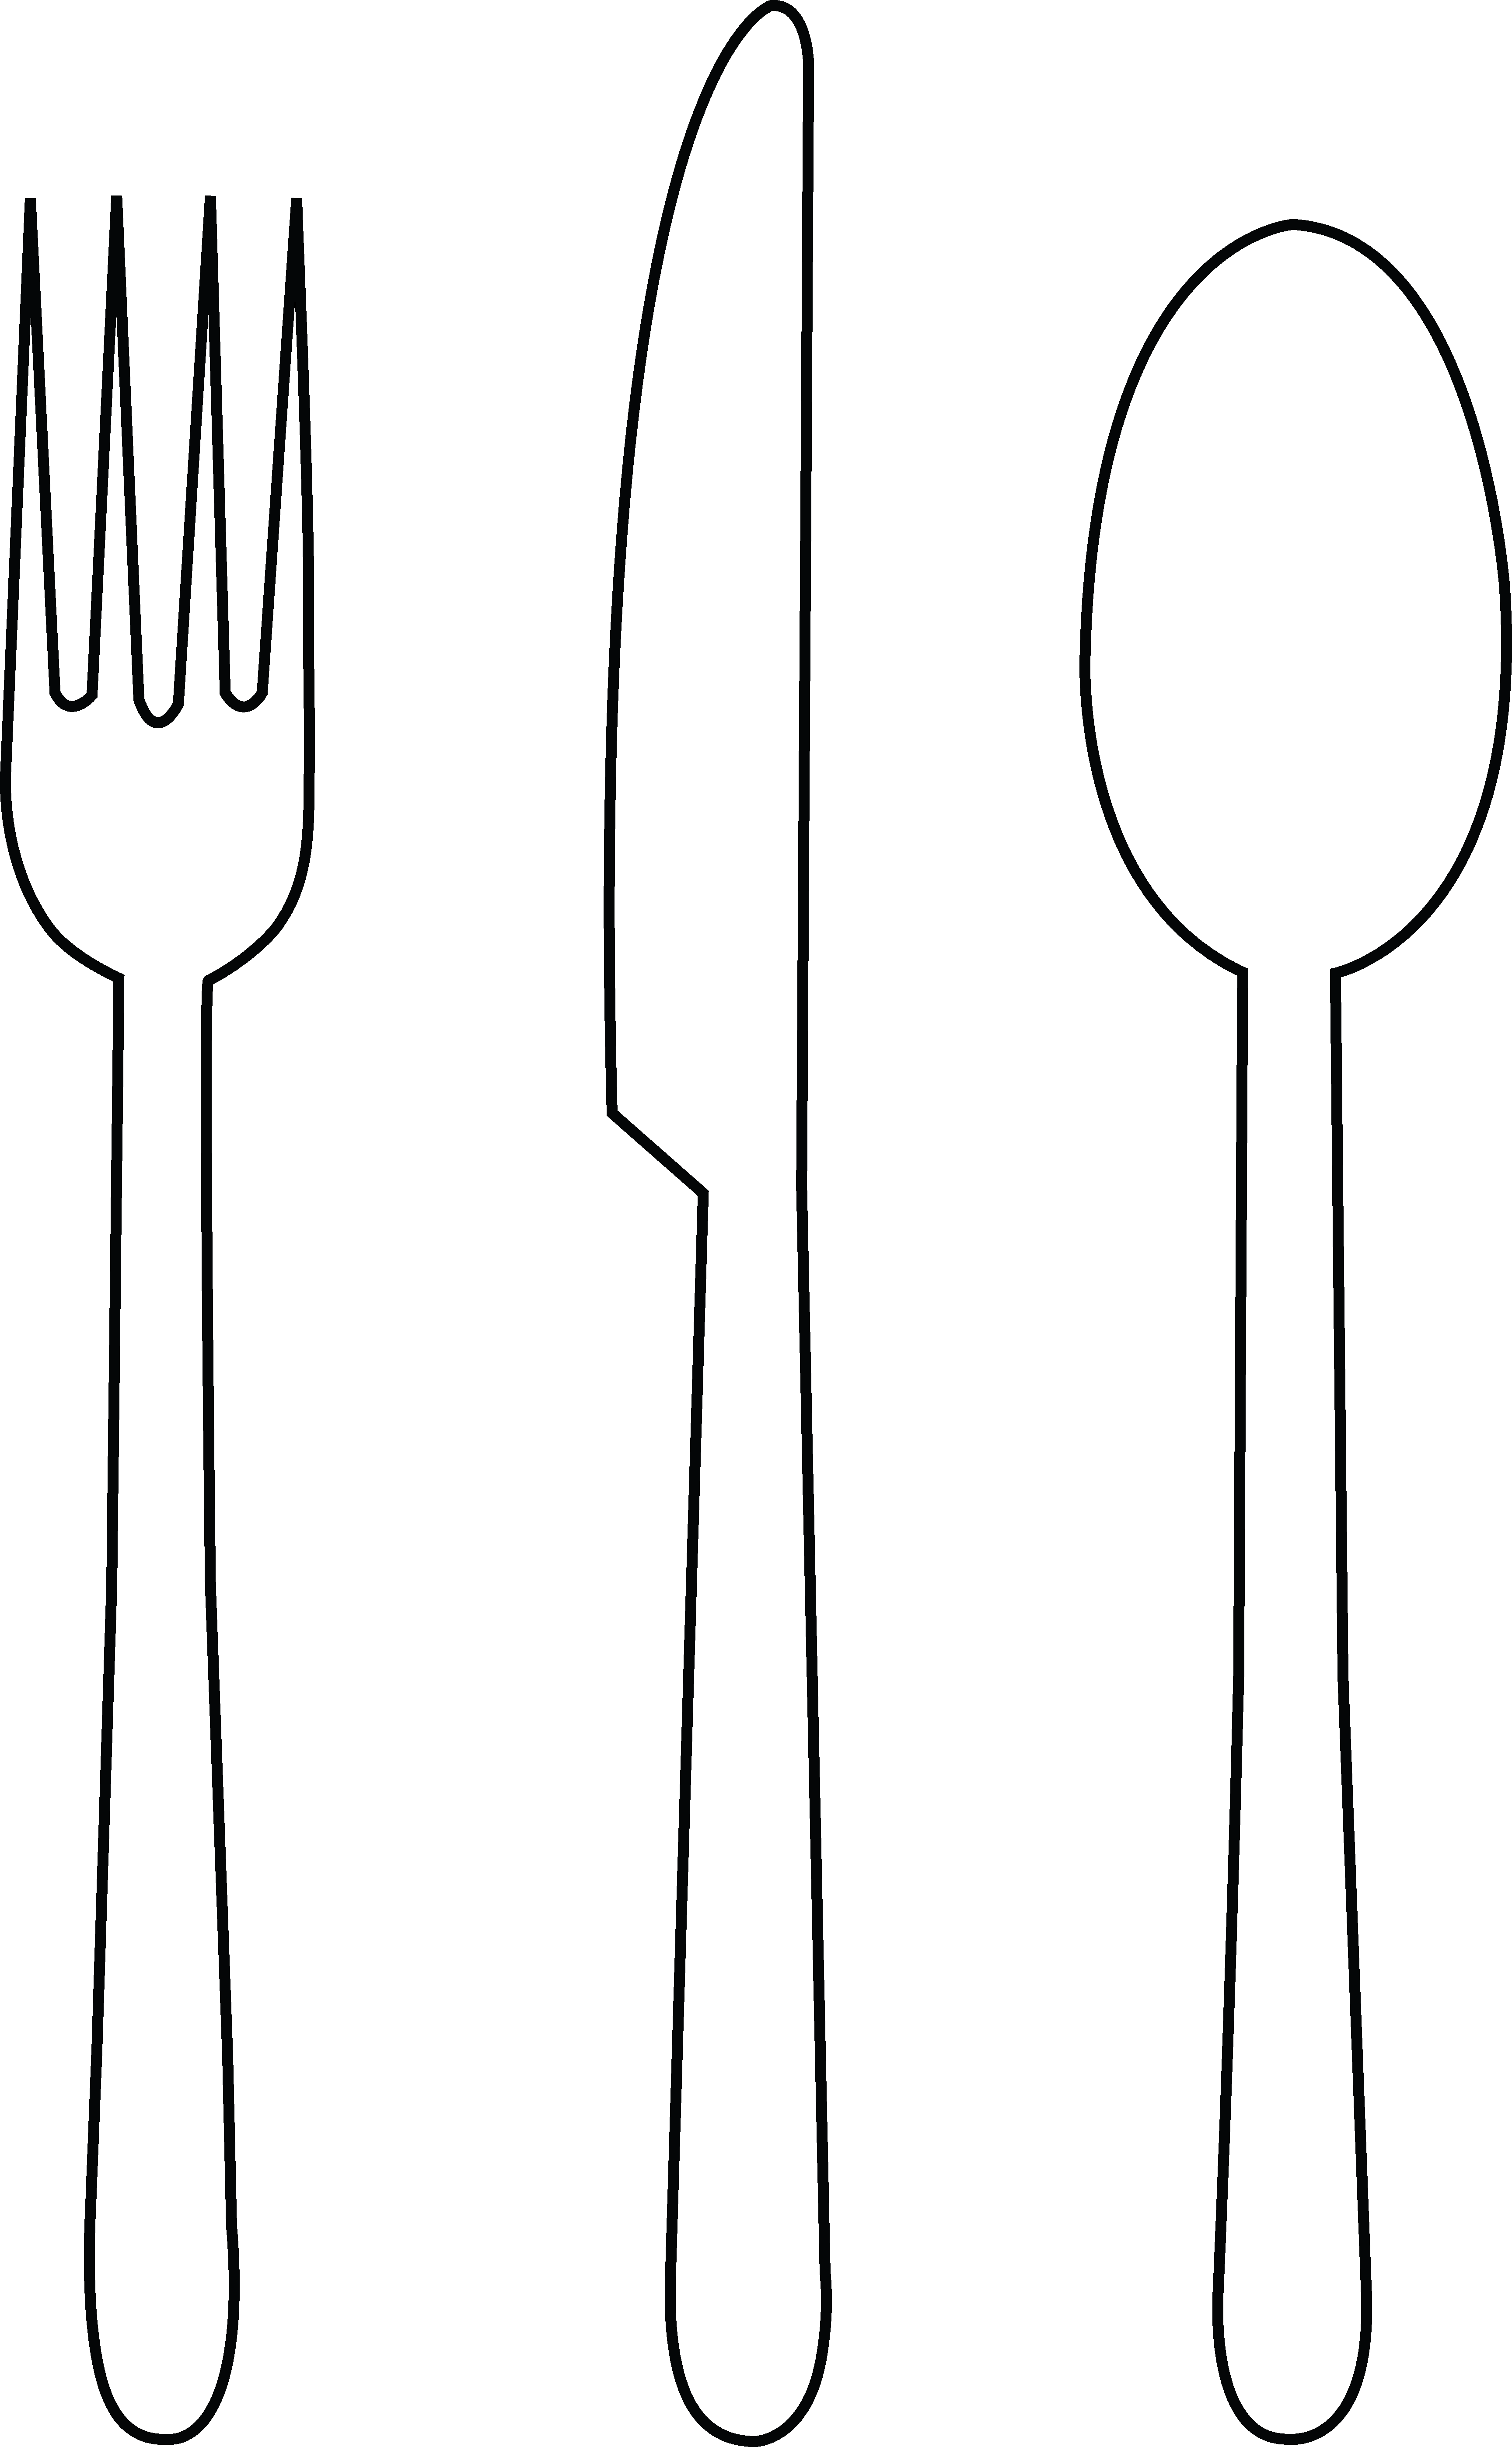 White forks and knife clipart clip royalty free download Free Spoon And Fork Clipart, Download Free Clip Art, Free Clip Art ... clip royalty free download